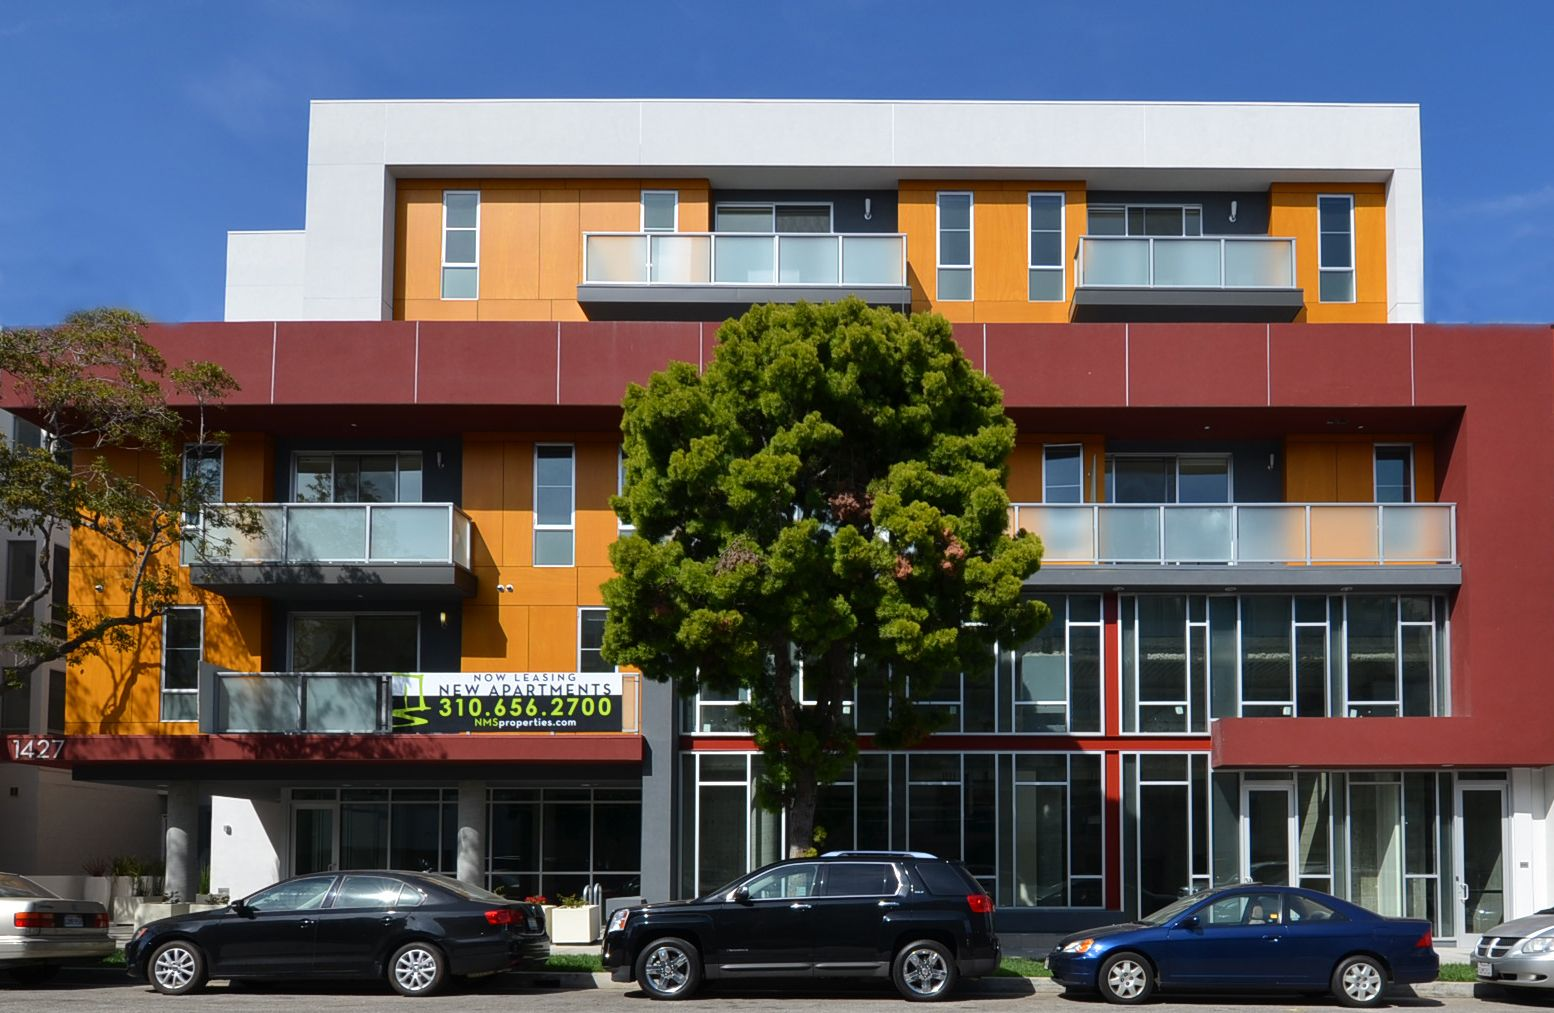 Charming Santa Monica Apartments For Rent | NMS Properties Developed And Constructed  This Amazing And